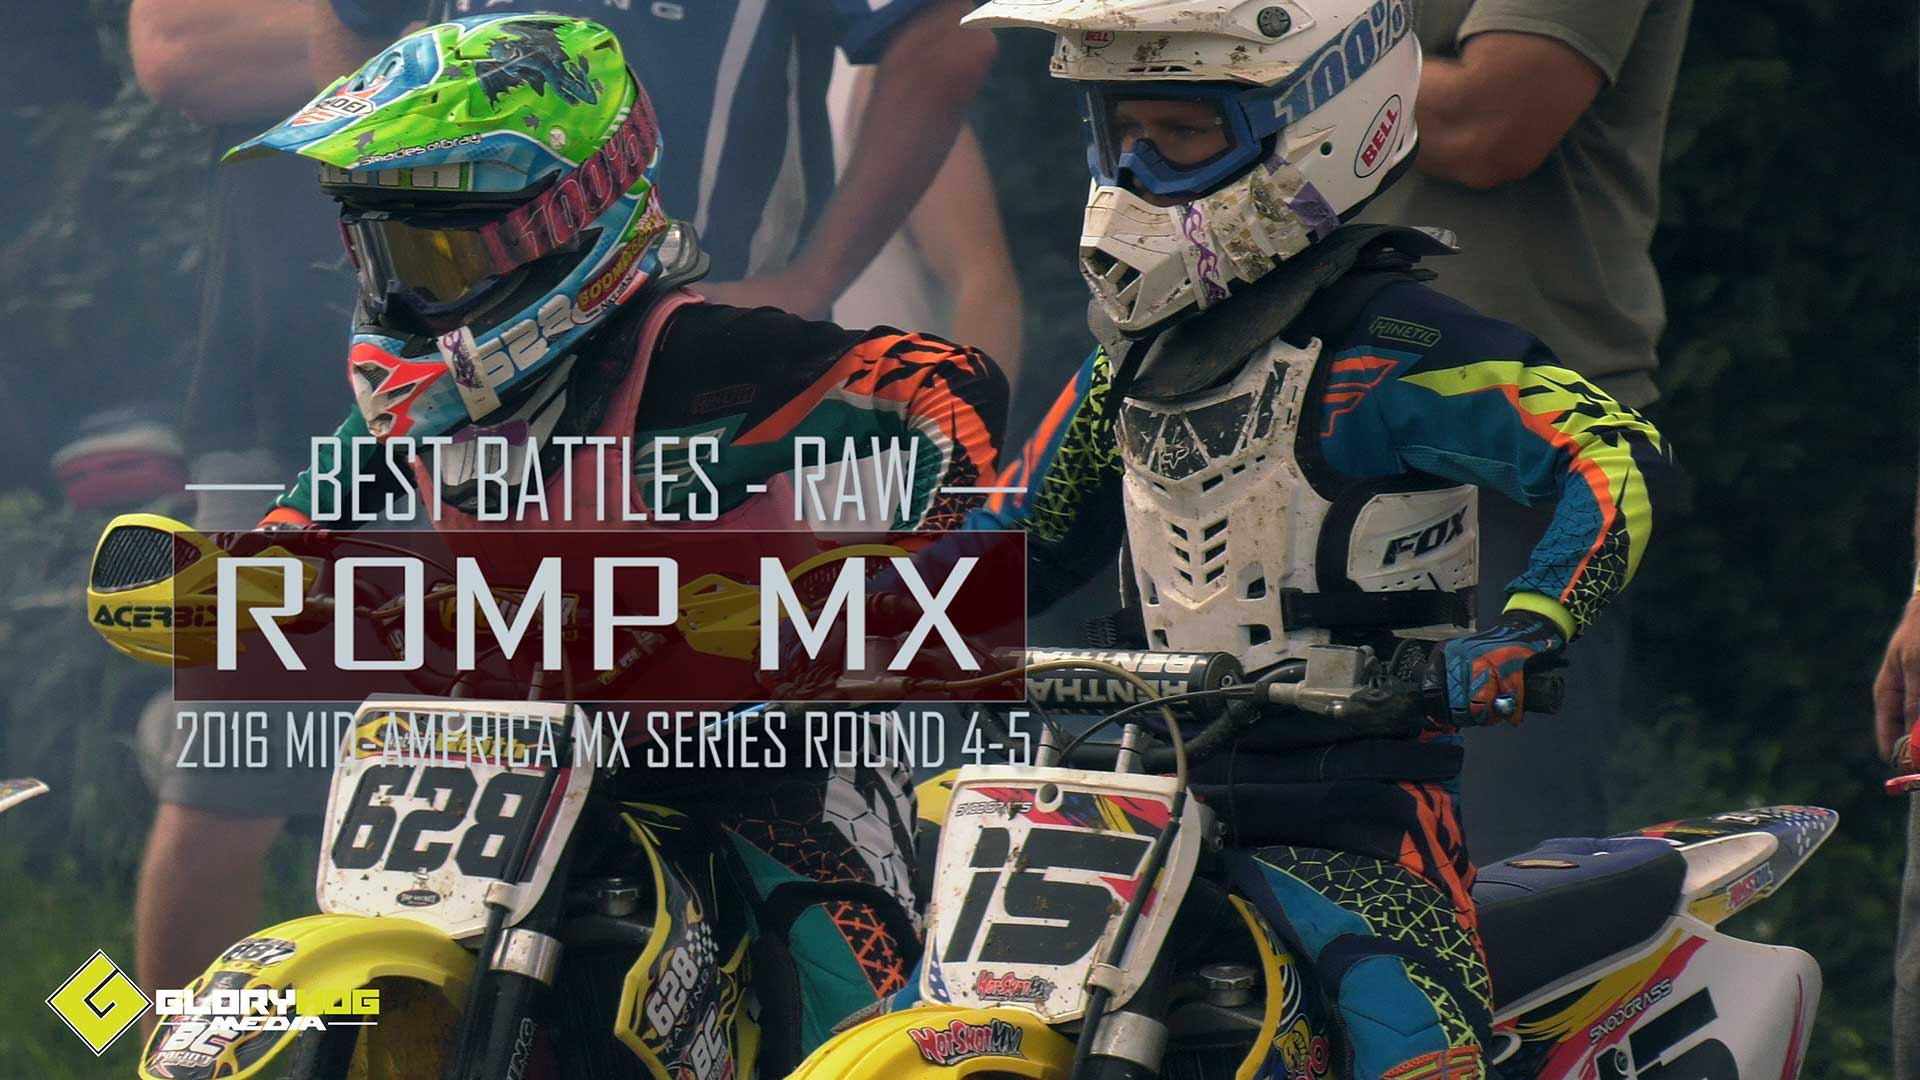 Best Battles Mid-America Motocross Series ROMP MX - Glory Hog Media